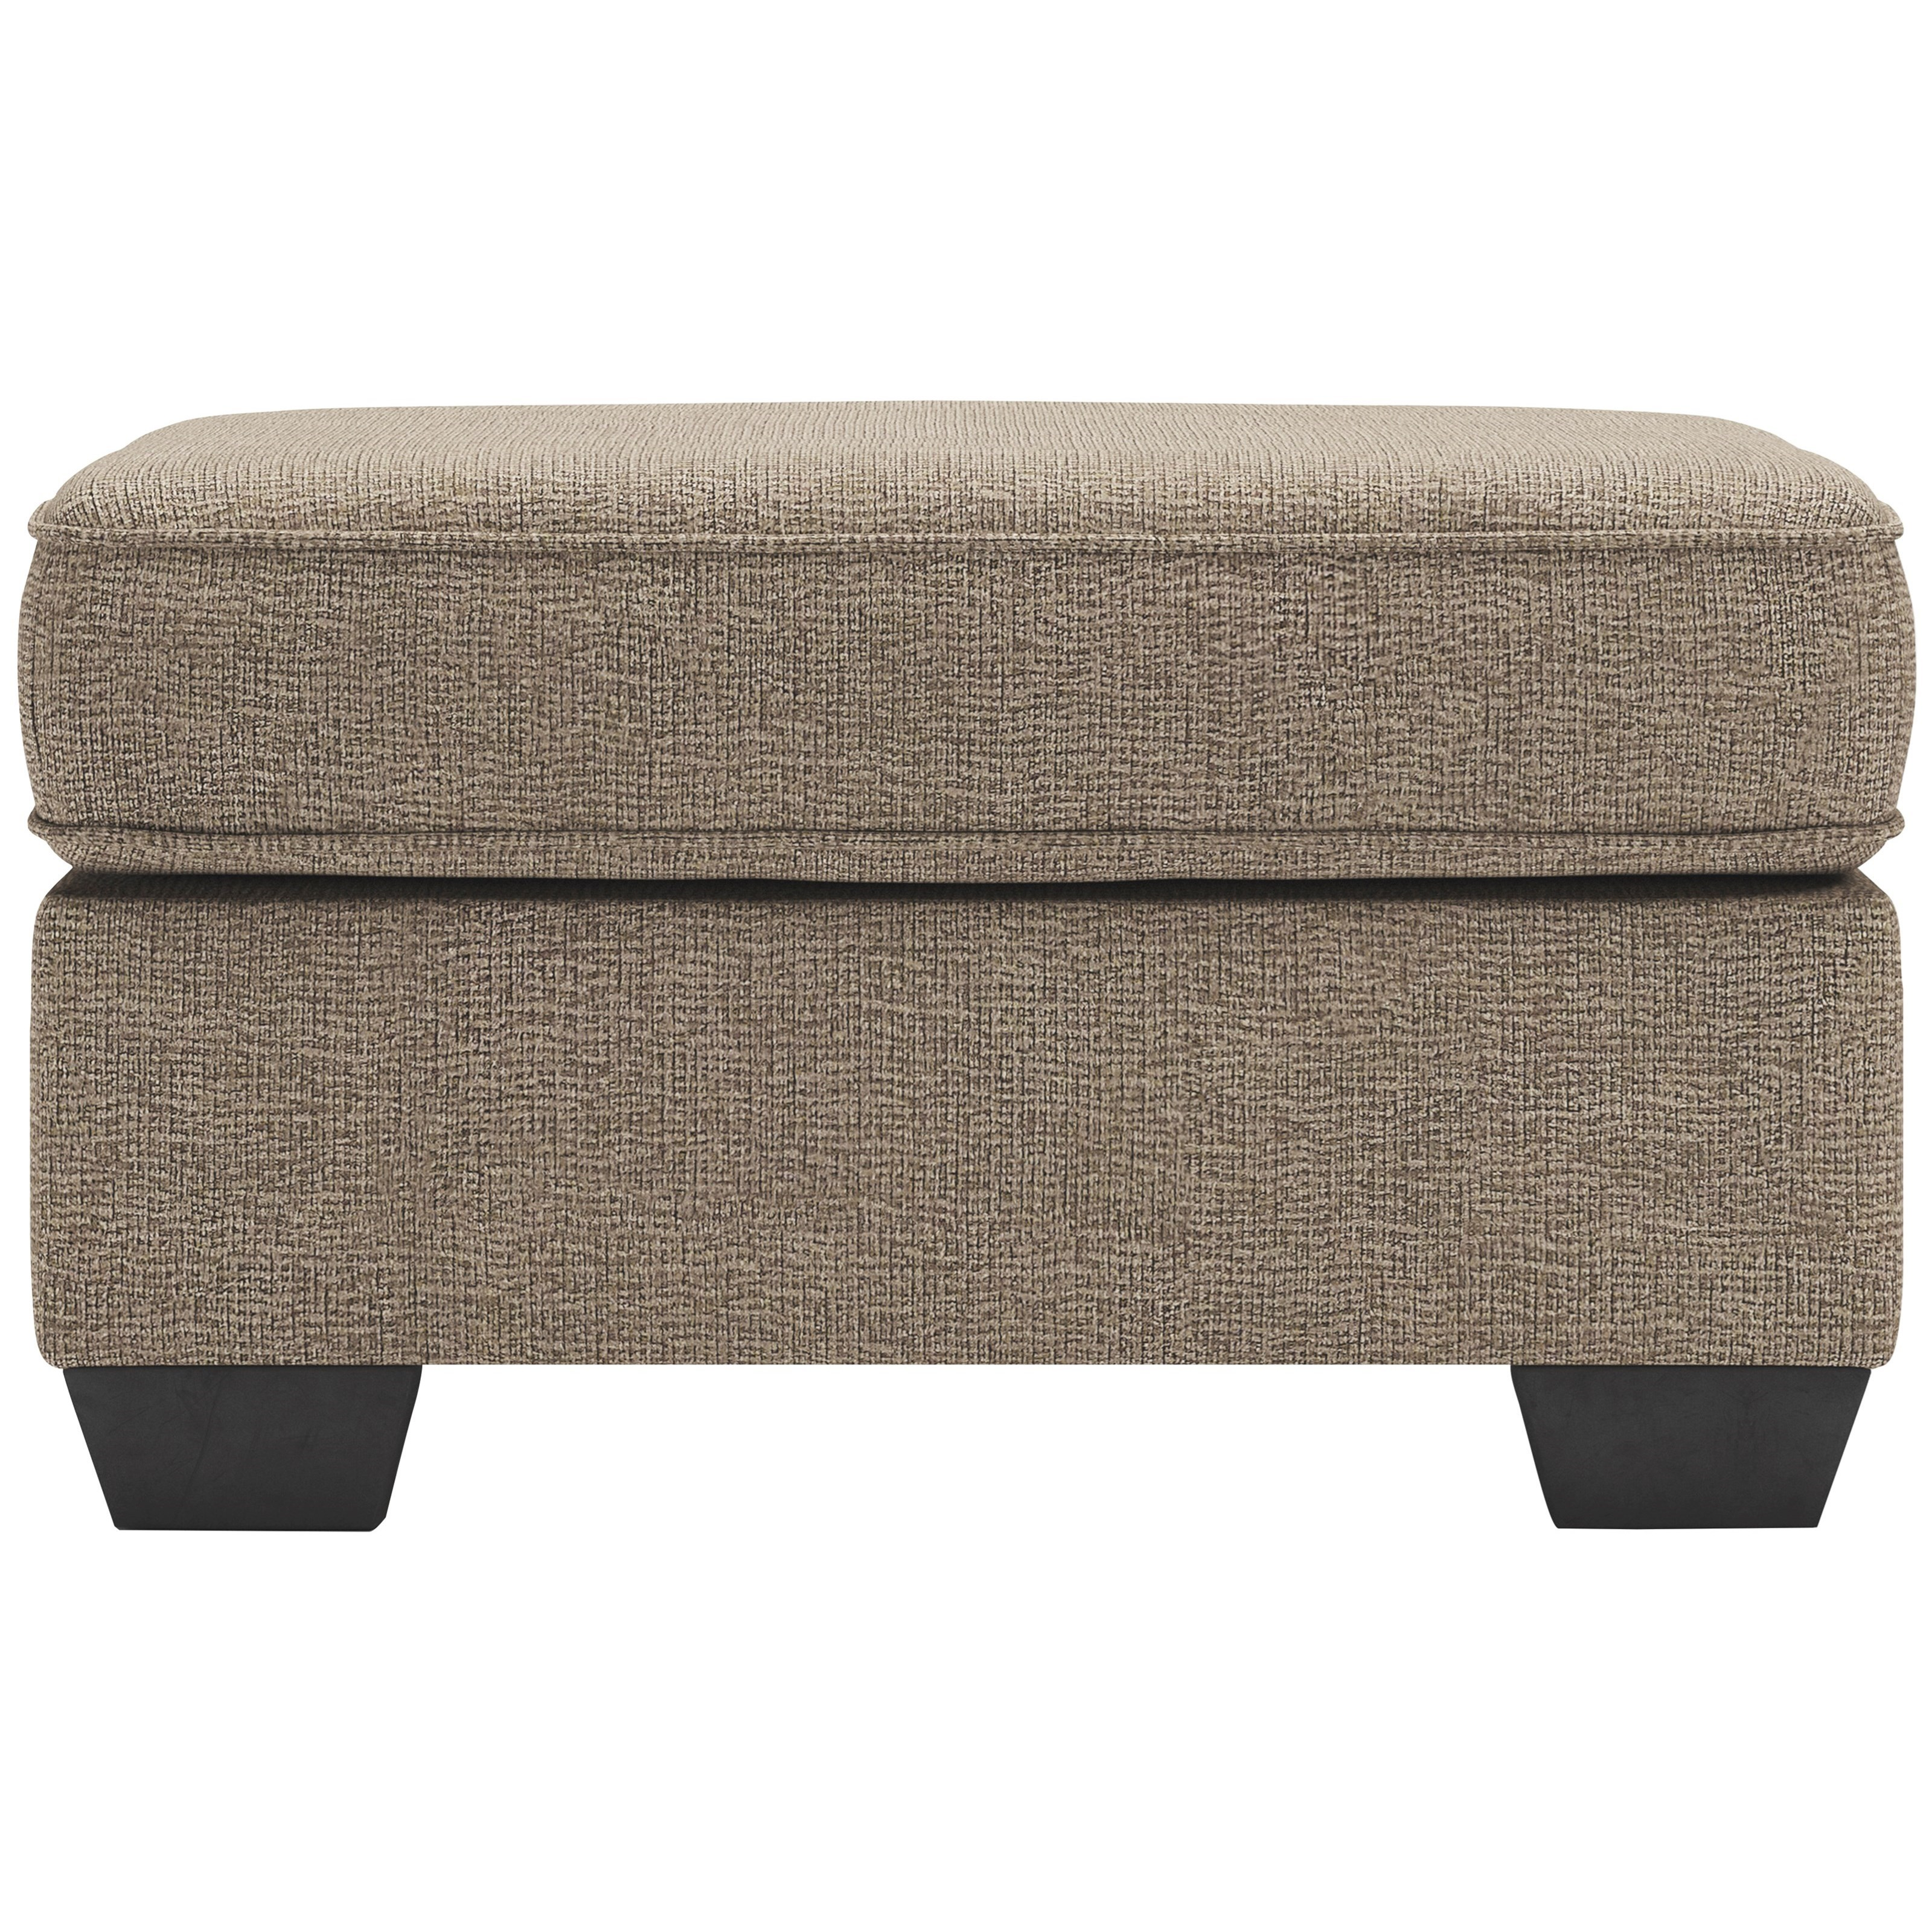 Greaves Ottoman by StyleLine at EFO Furniture Outlet